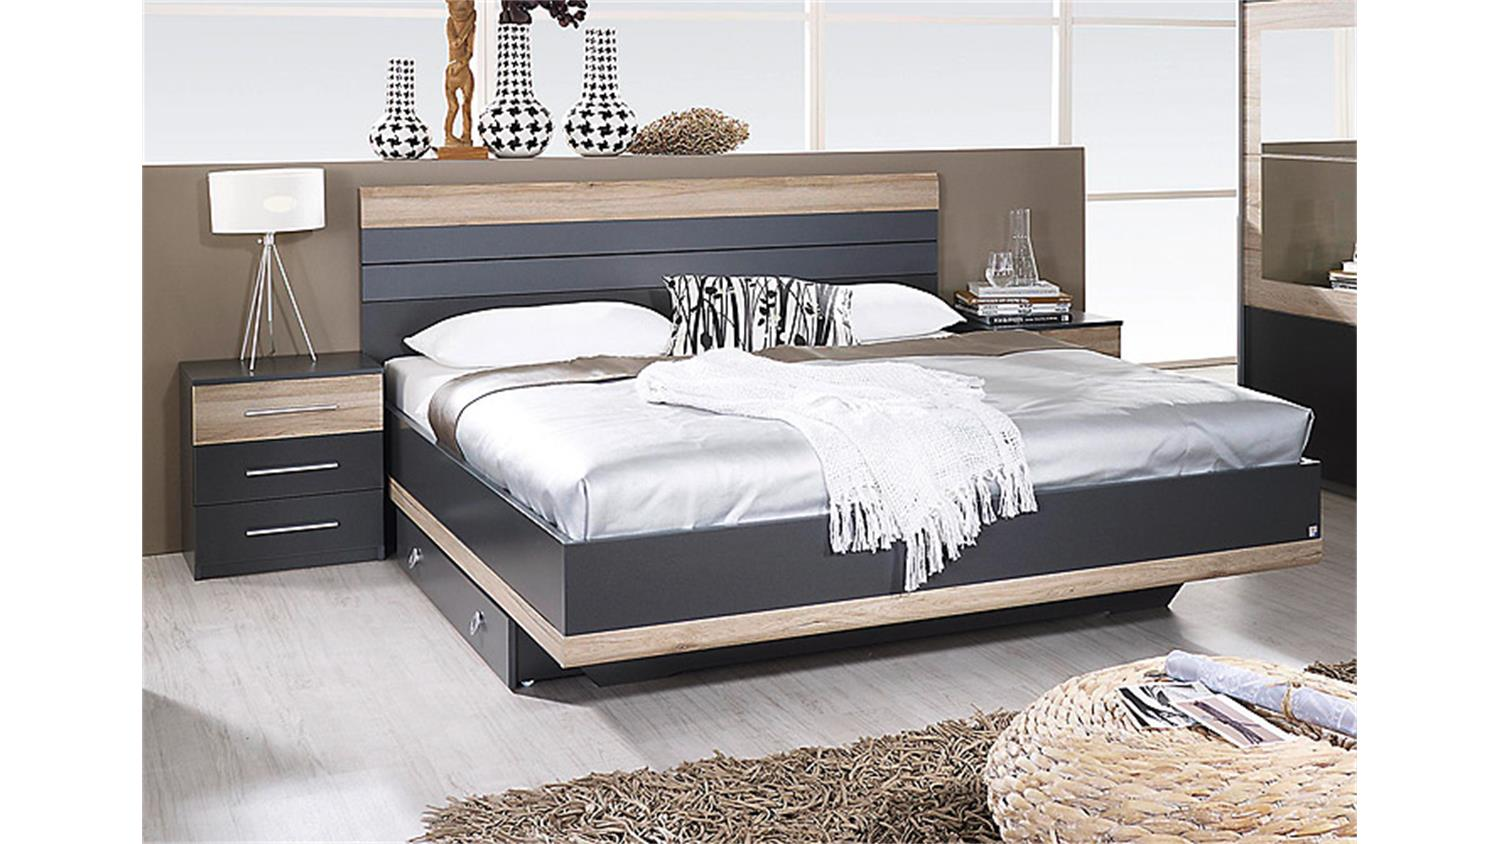 schlafzimmer set tarragona grau metallic eiche sanremo hell. Black Bedroom Furniture Sets. Home Design Ideas